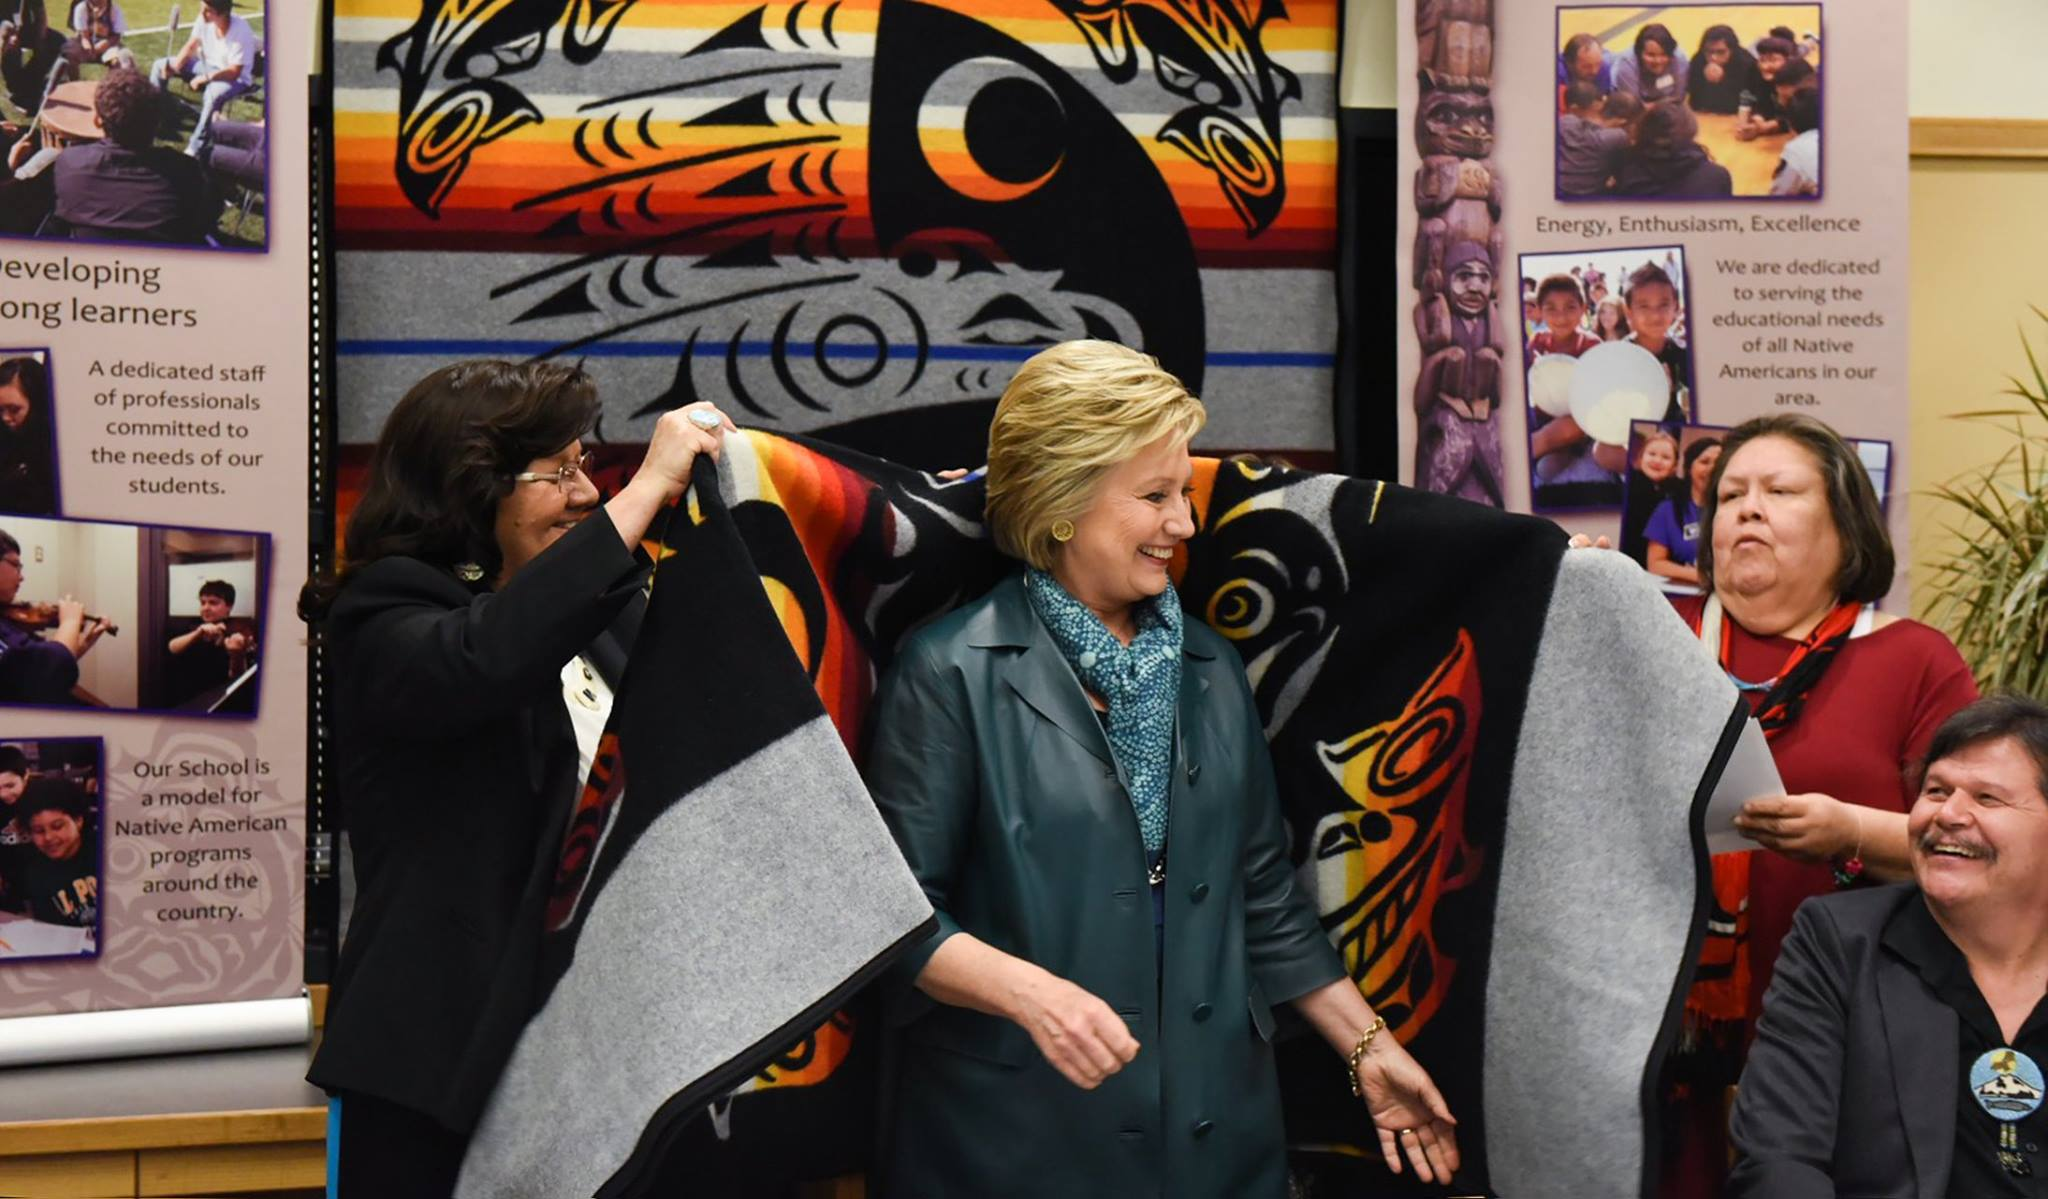 Gyasi Ross: Hillary Clinton can't stay quiet on #NoDAPL movement